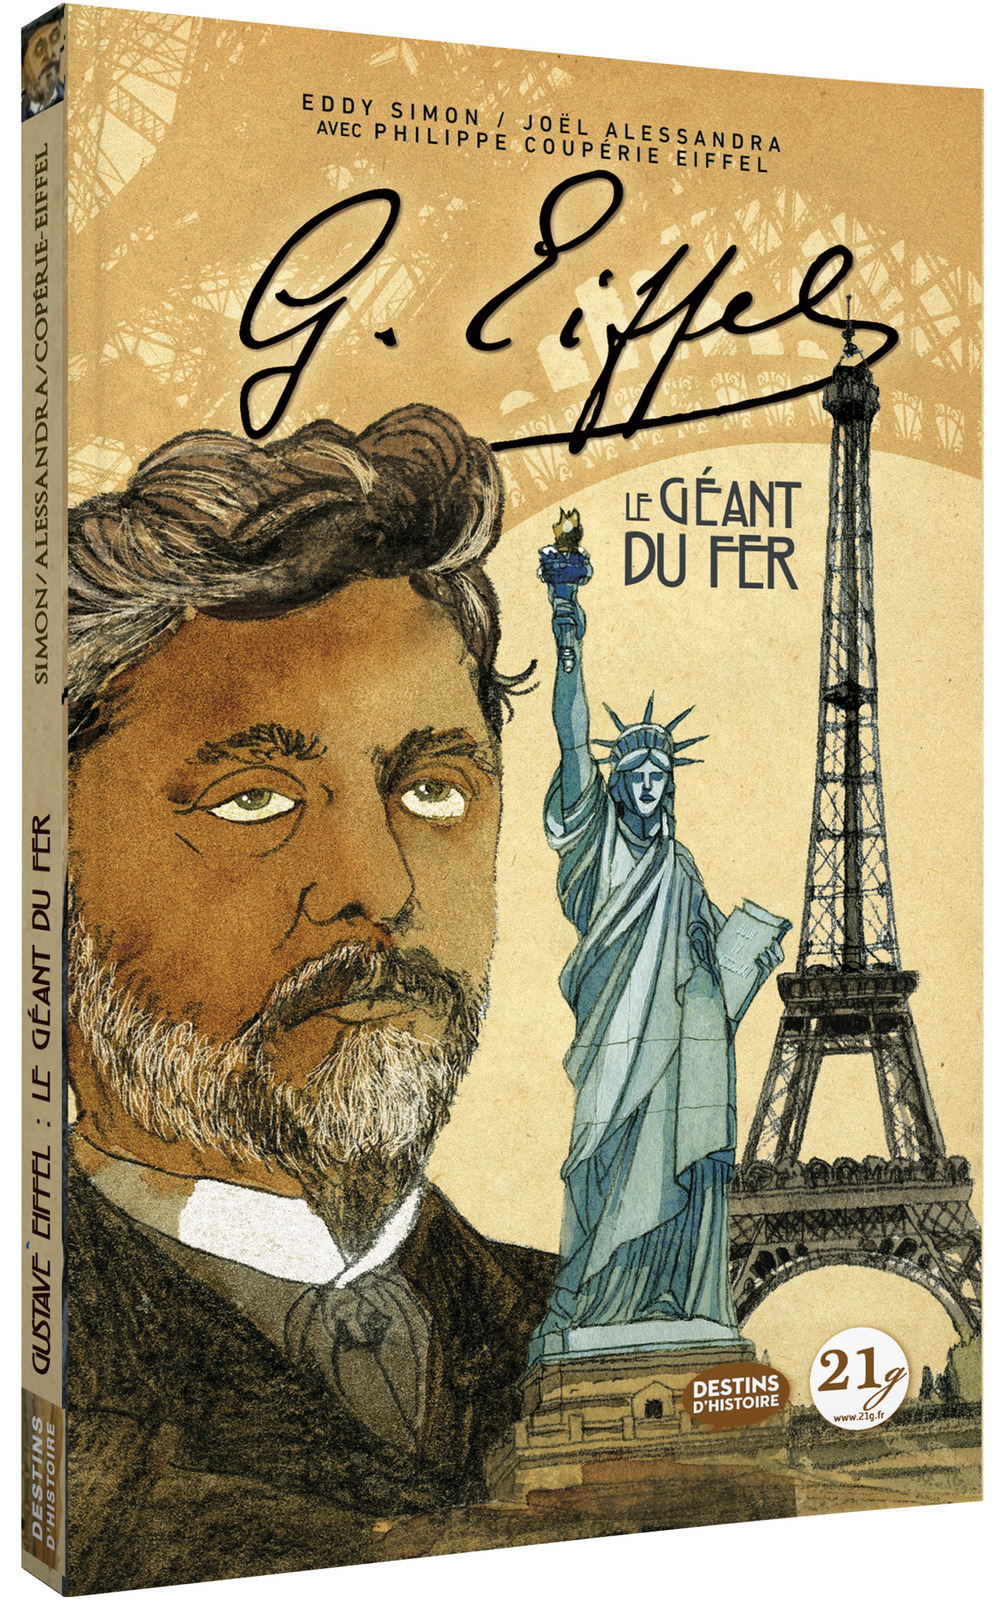 "Cover of graphic novel ""Gustave Eiffel: le Géant du Fer,"" written by Phillippe Couperie-Eiffel with Eddy Simon and Joël Alessandra."